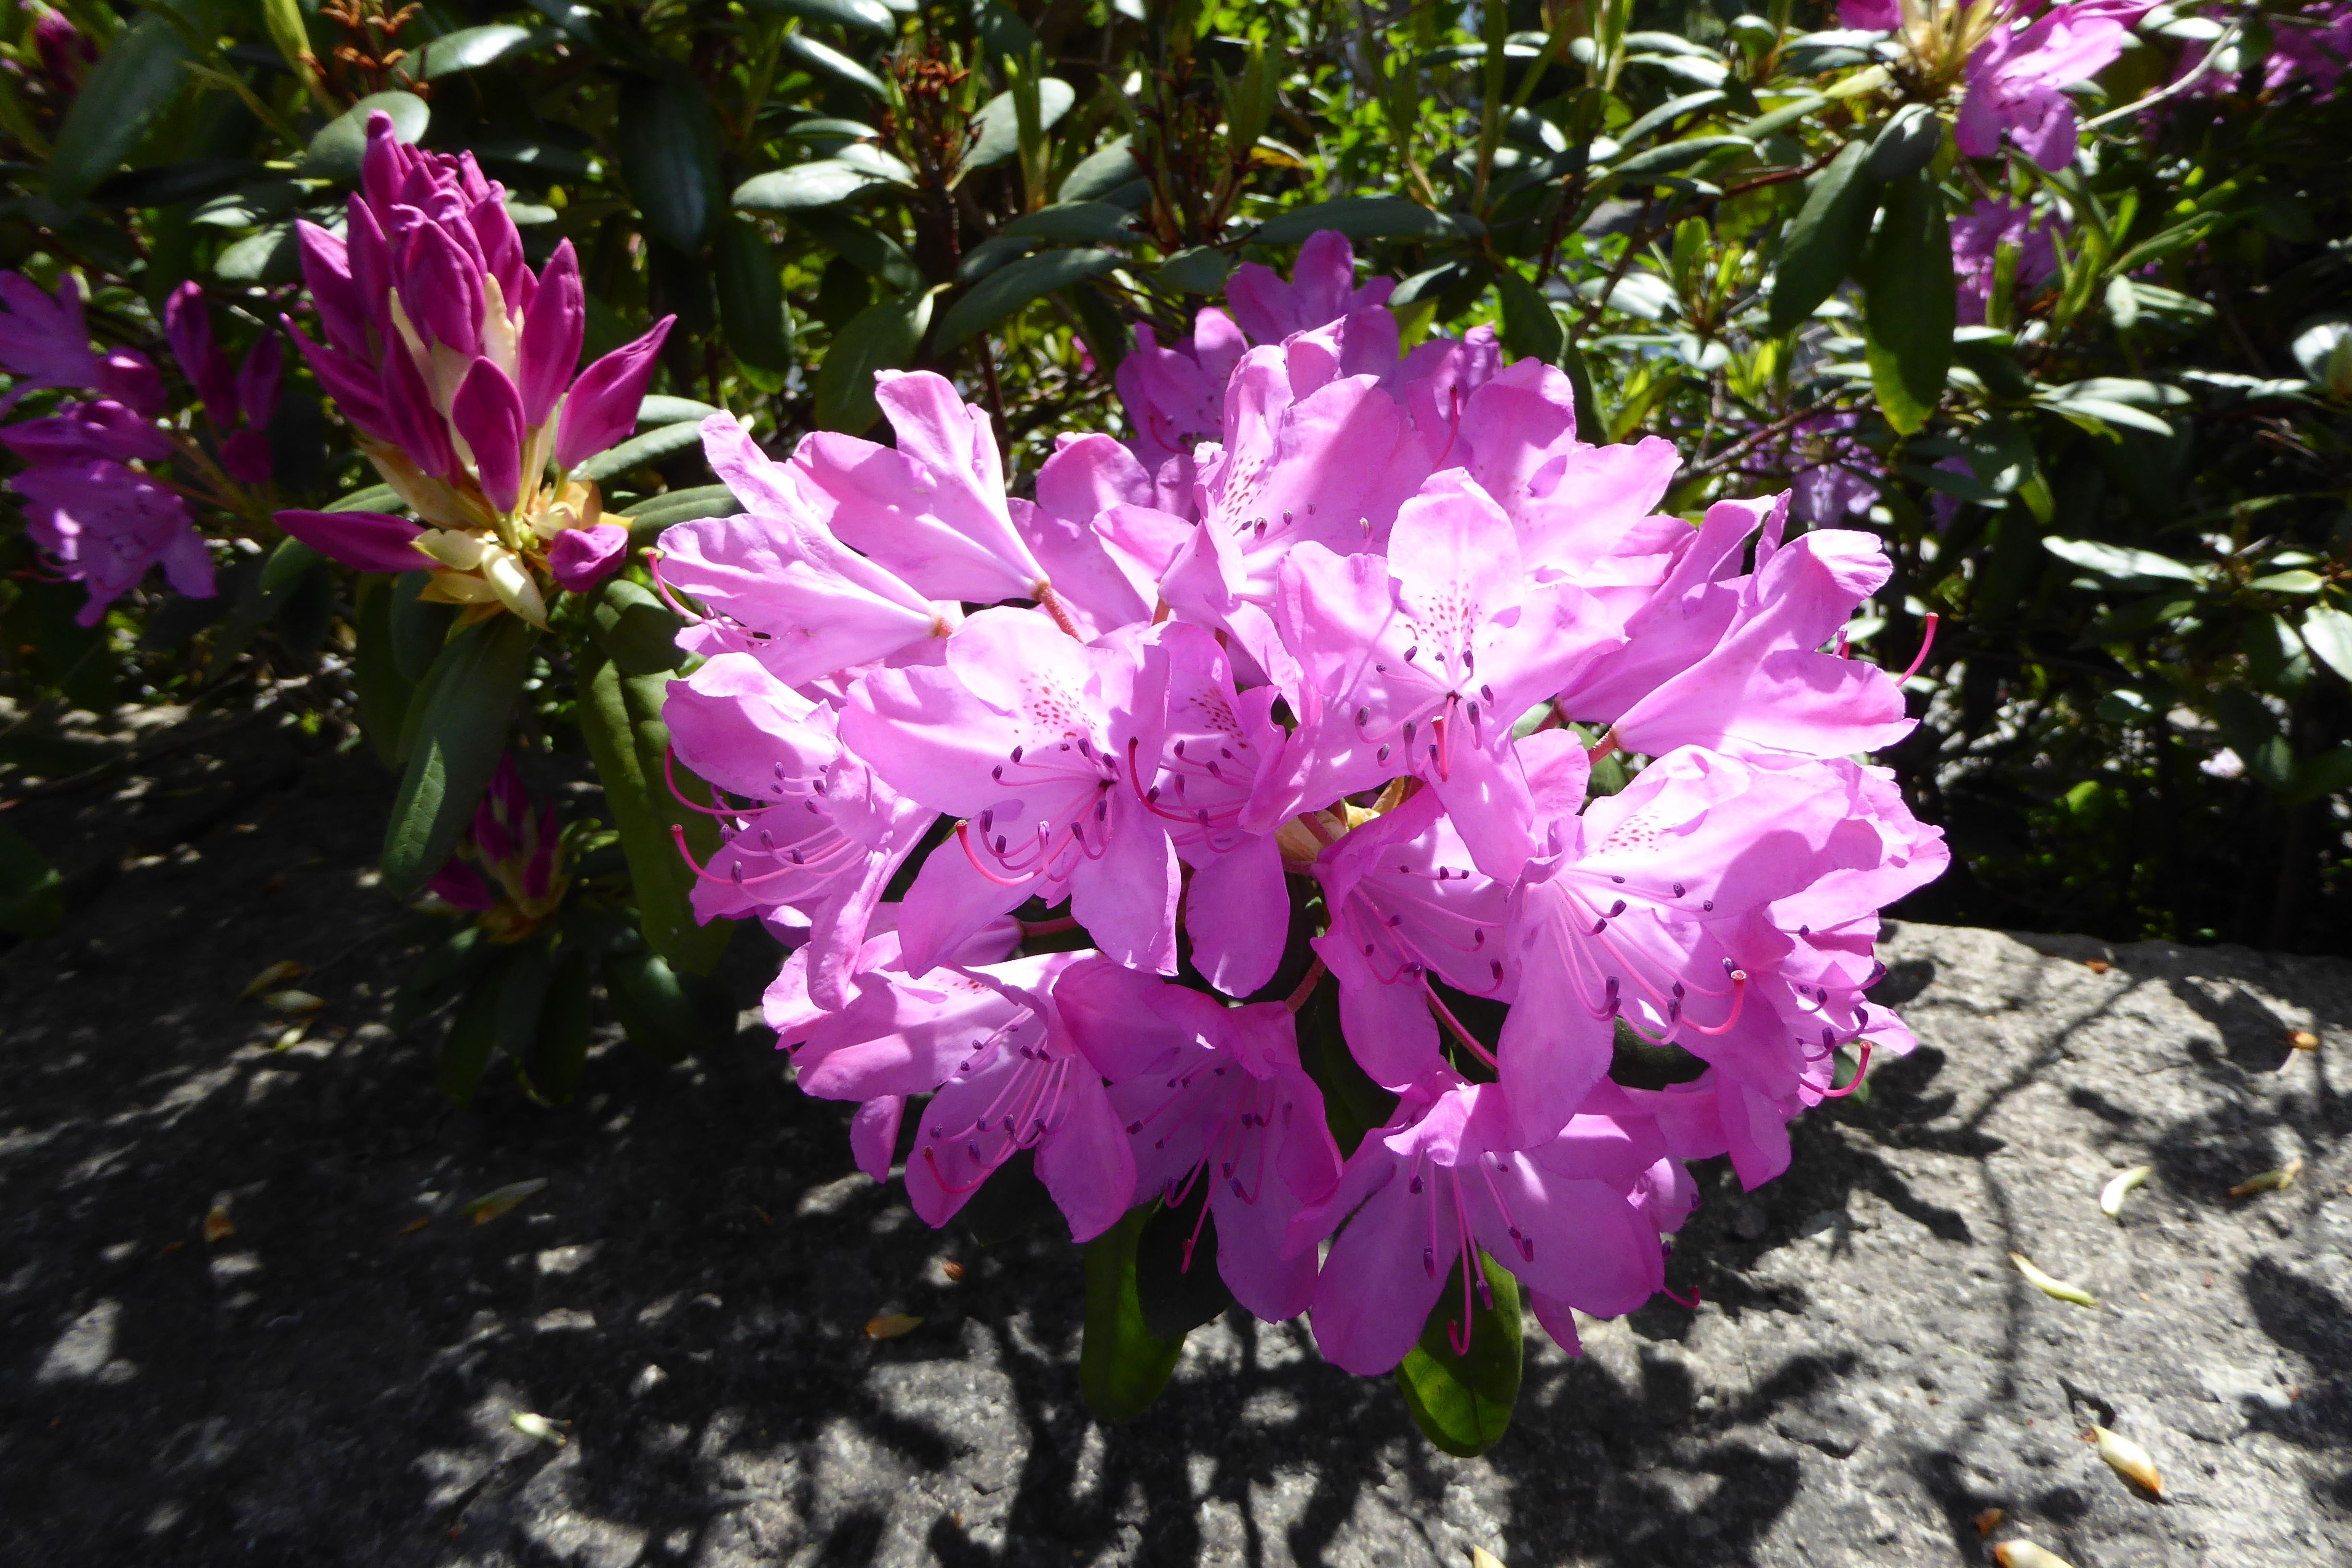 Rhododendron Is A Genus Of 1 024 Species Of Woody Plants In The Heath Family Either Evergreen Or Deciduous And Found Mainly Plants Habitats Projects Flowers